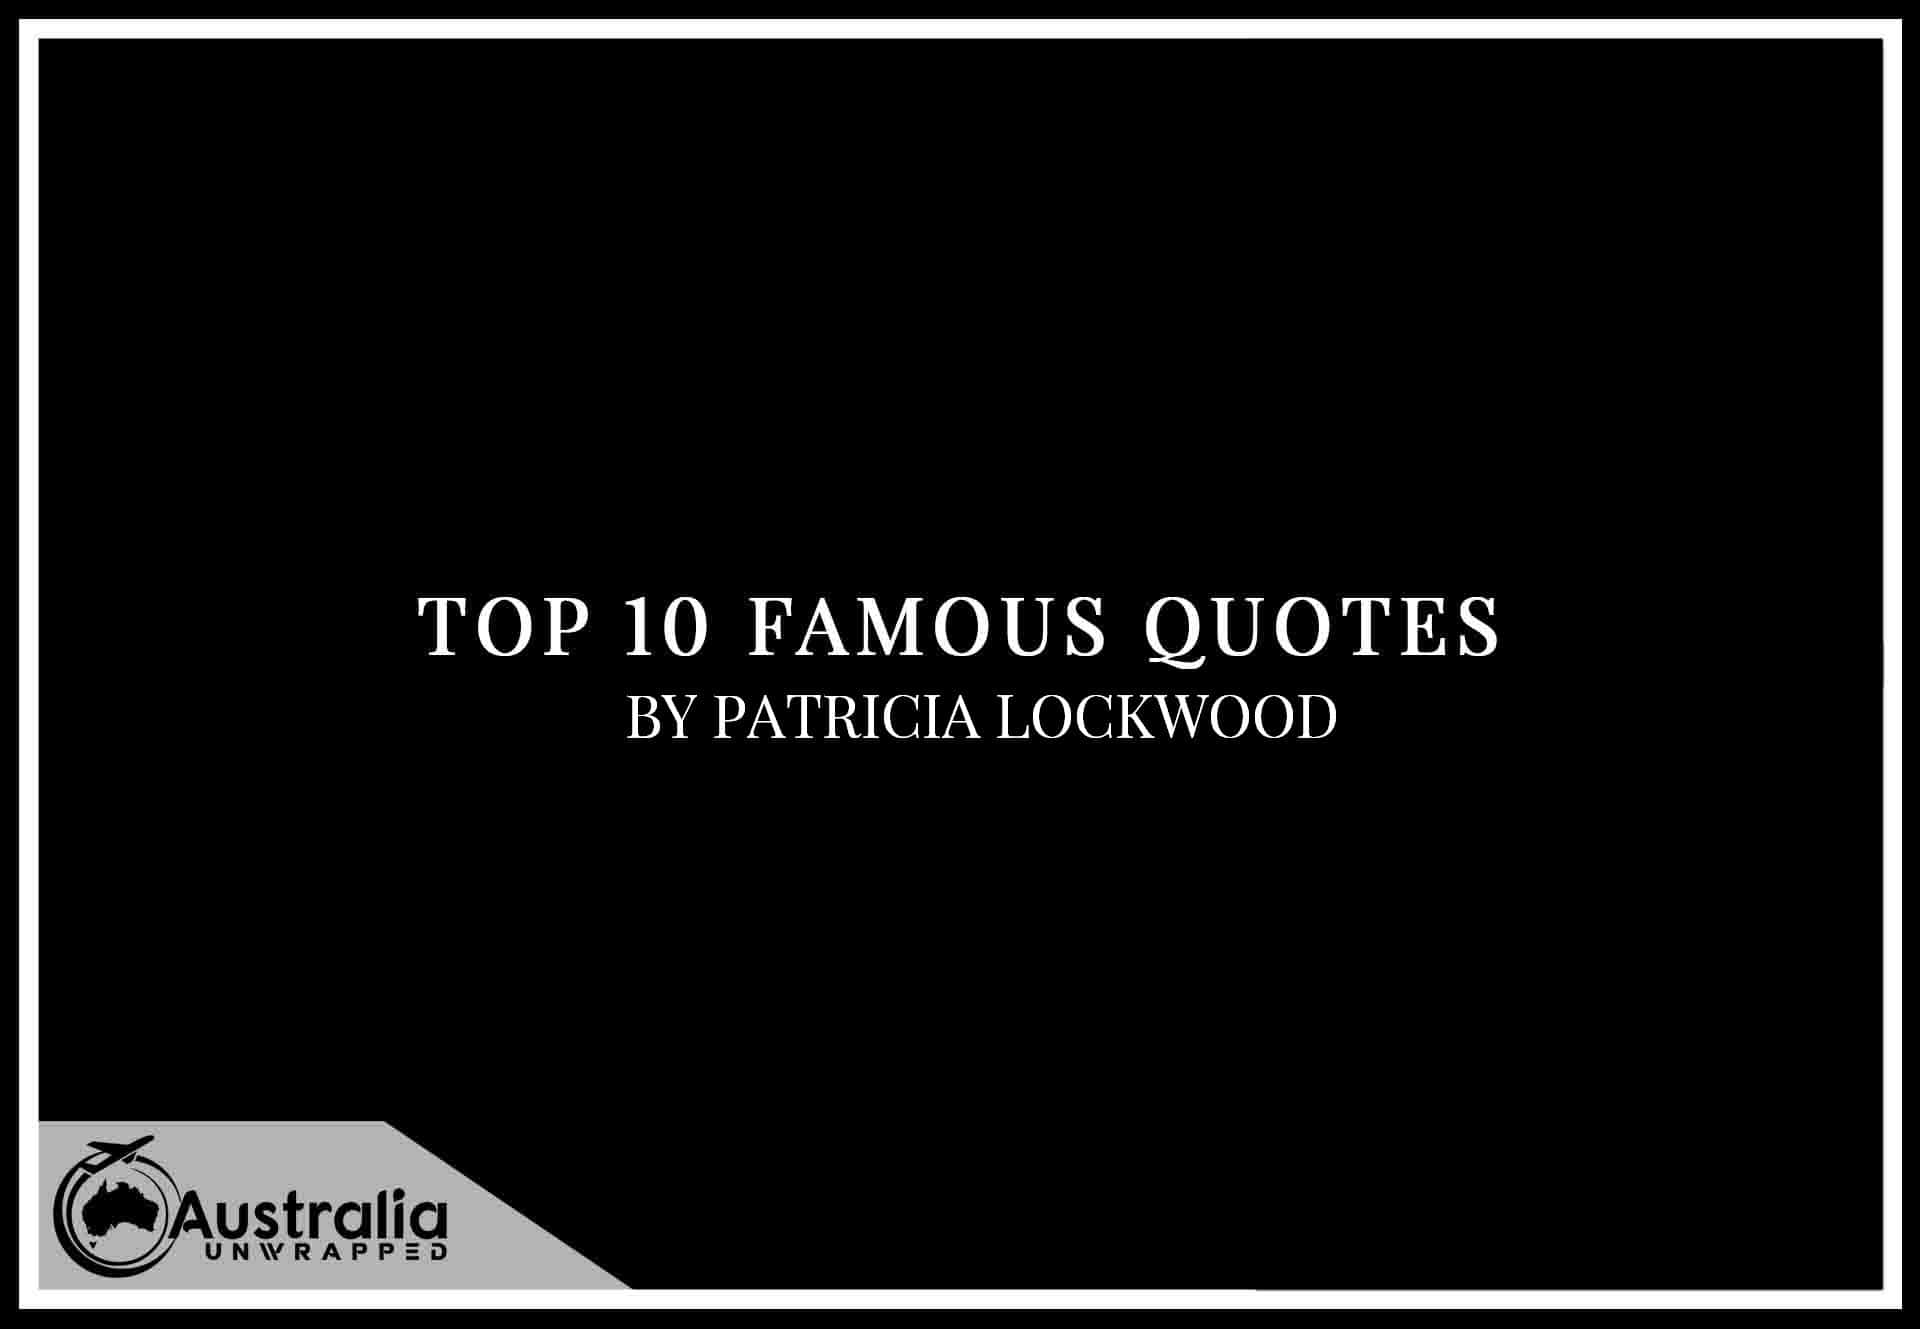 Top 10 Famous Quotes by Author Patricia Lockwood